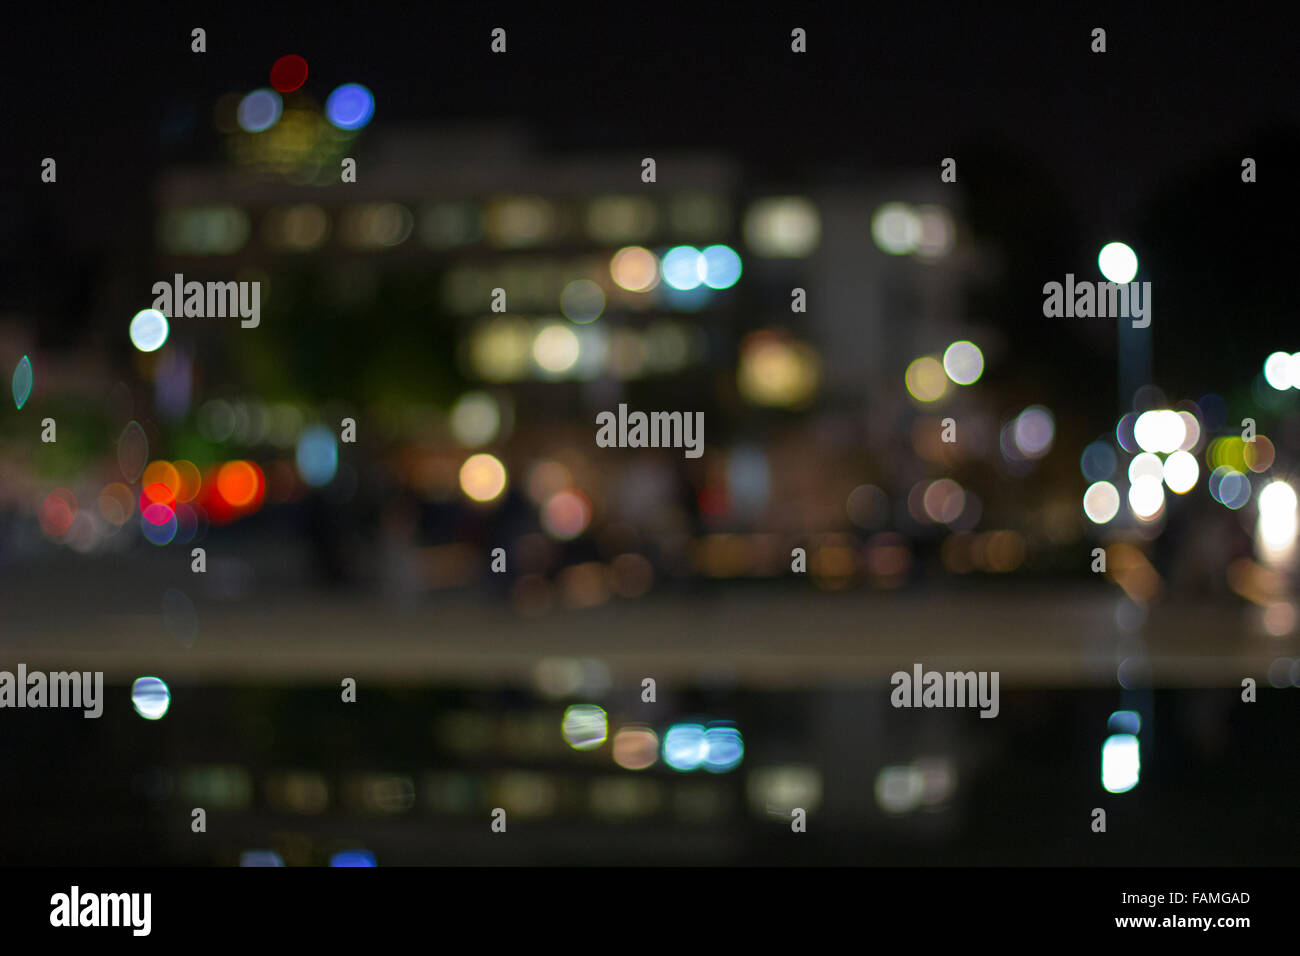 Artistic style - Defocused urban abstract texture,city lights boke in the background with blurring lights and water Stock Photo